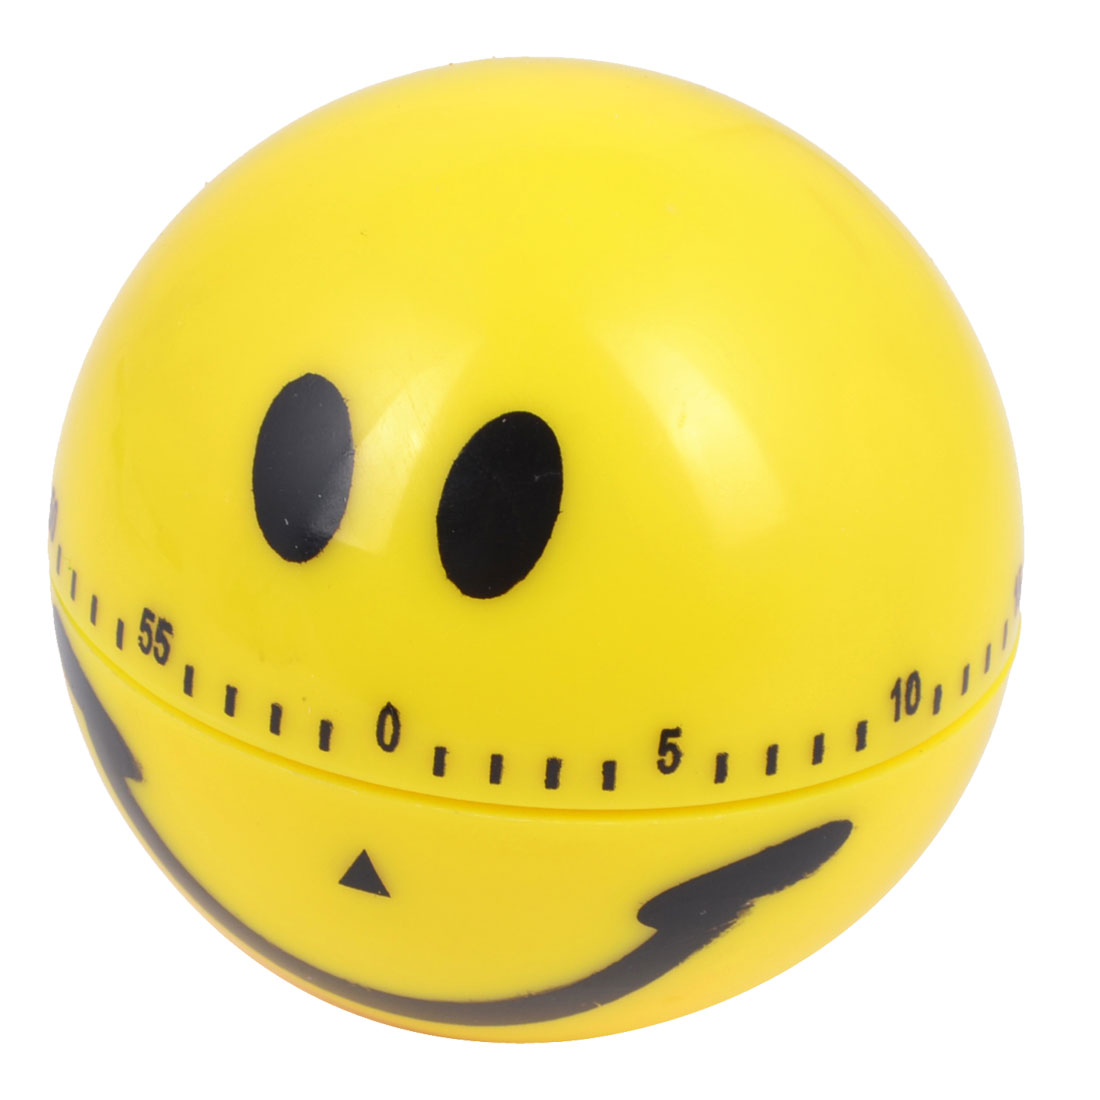 Kitchen Smile Face Design 60 Minute Count Down Clock Alarm Reminder Timer Yellow